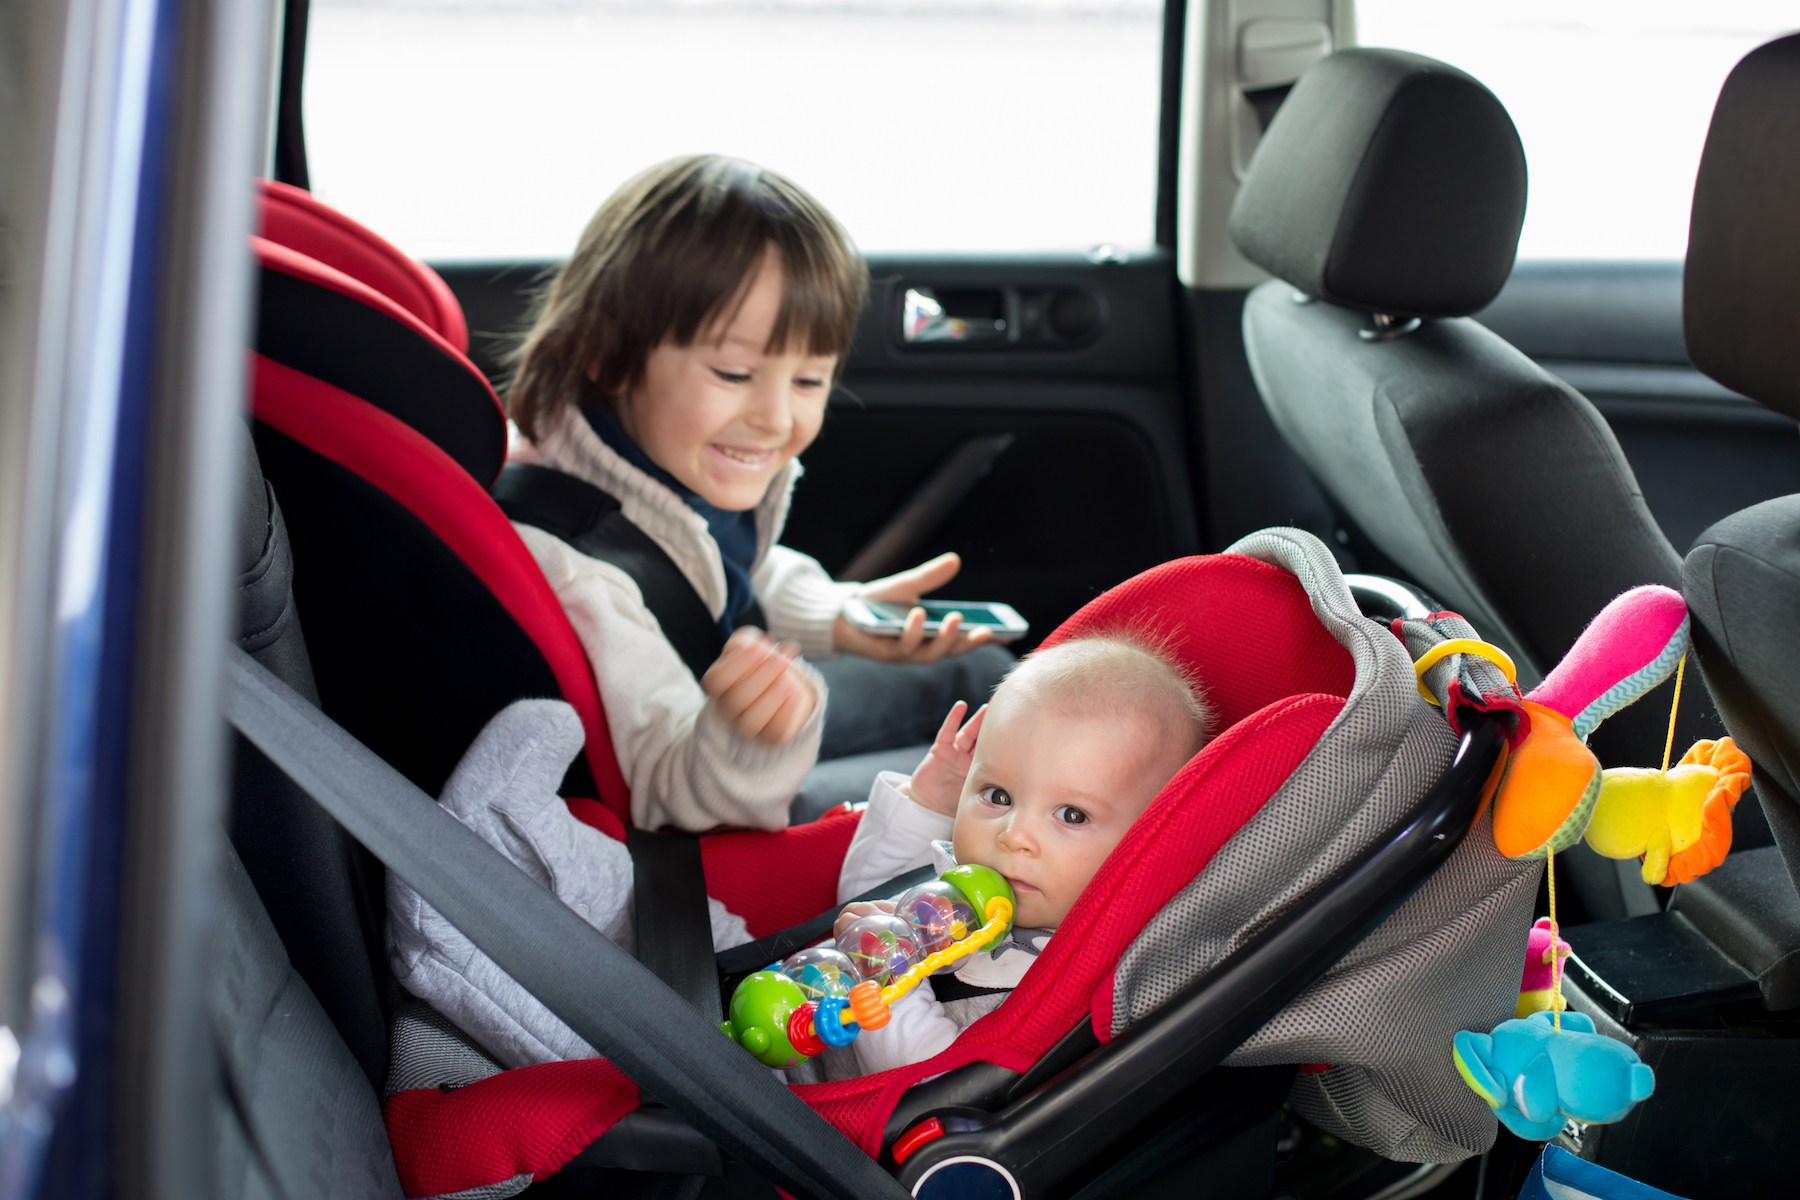 Car Seats For Kids: The Necessities To Keep Children Safe